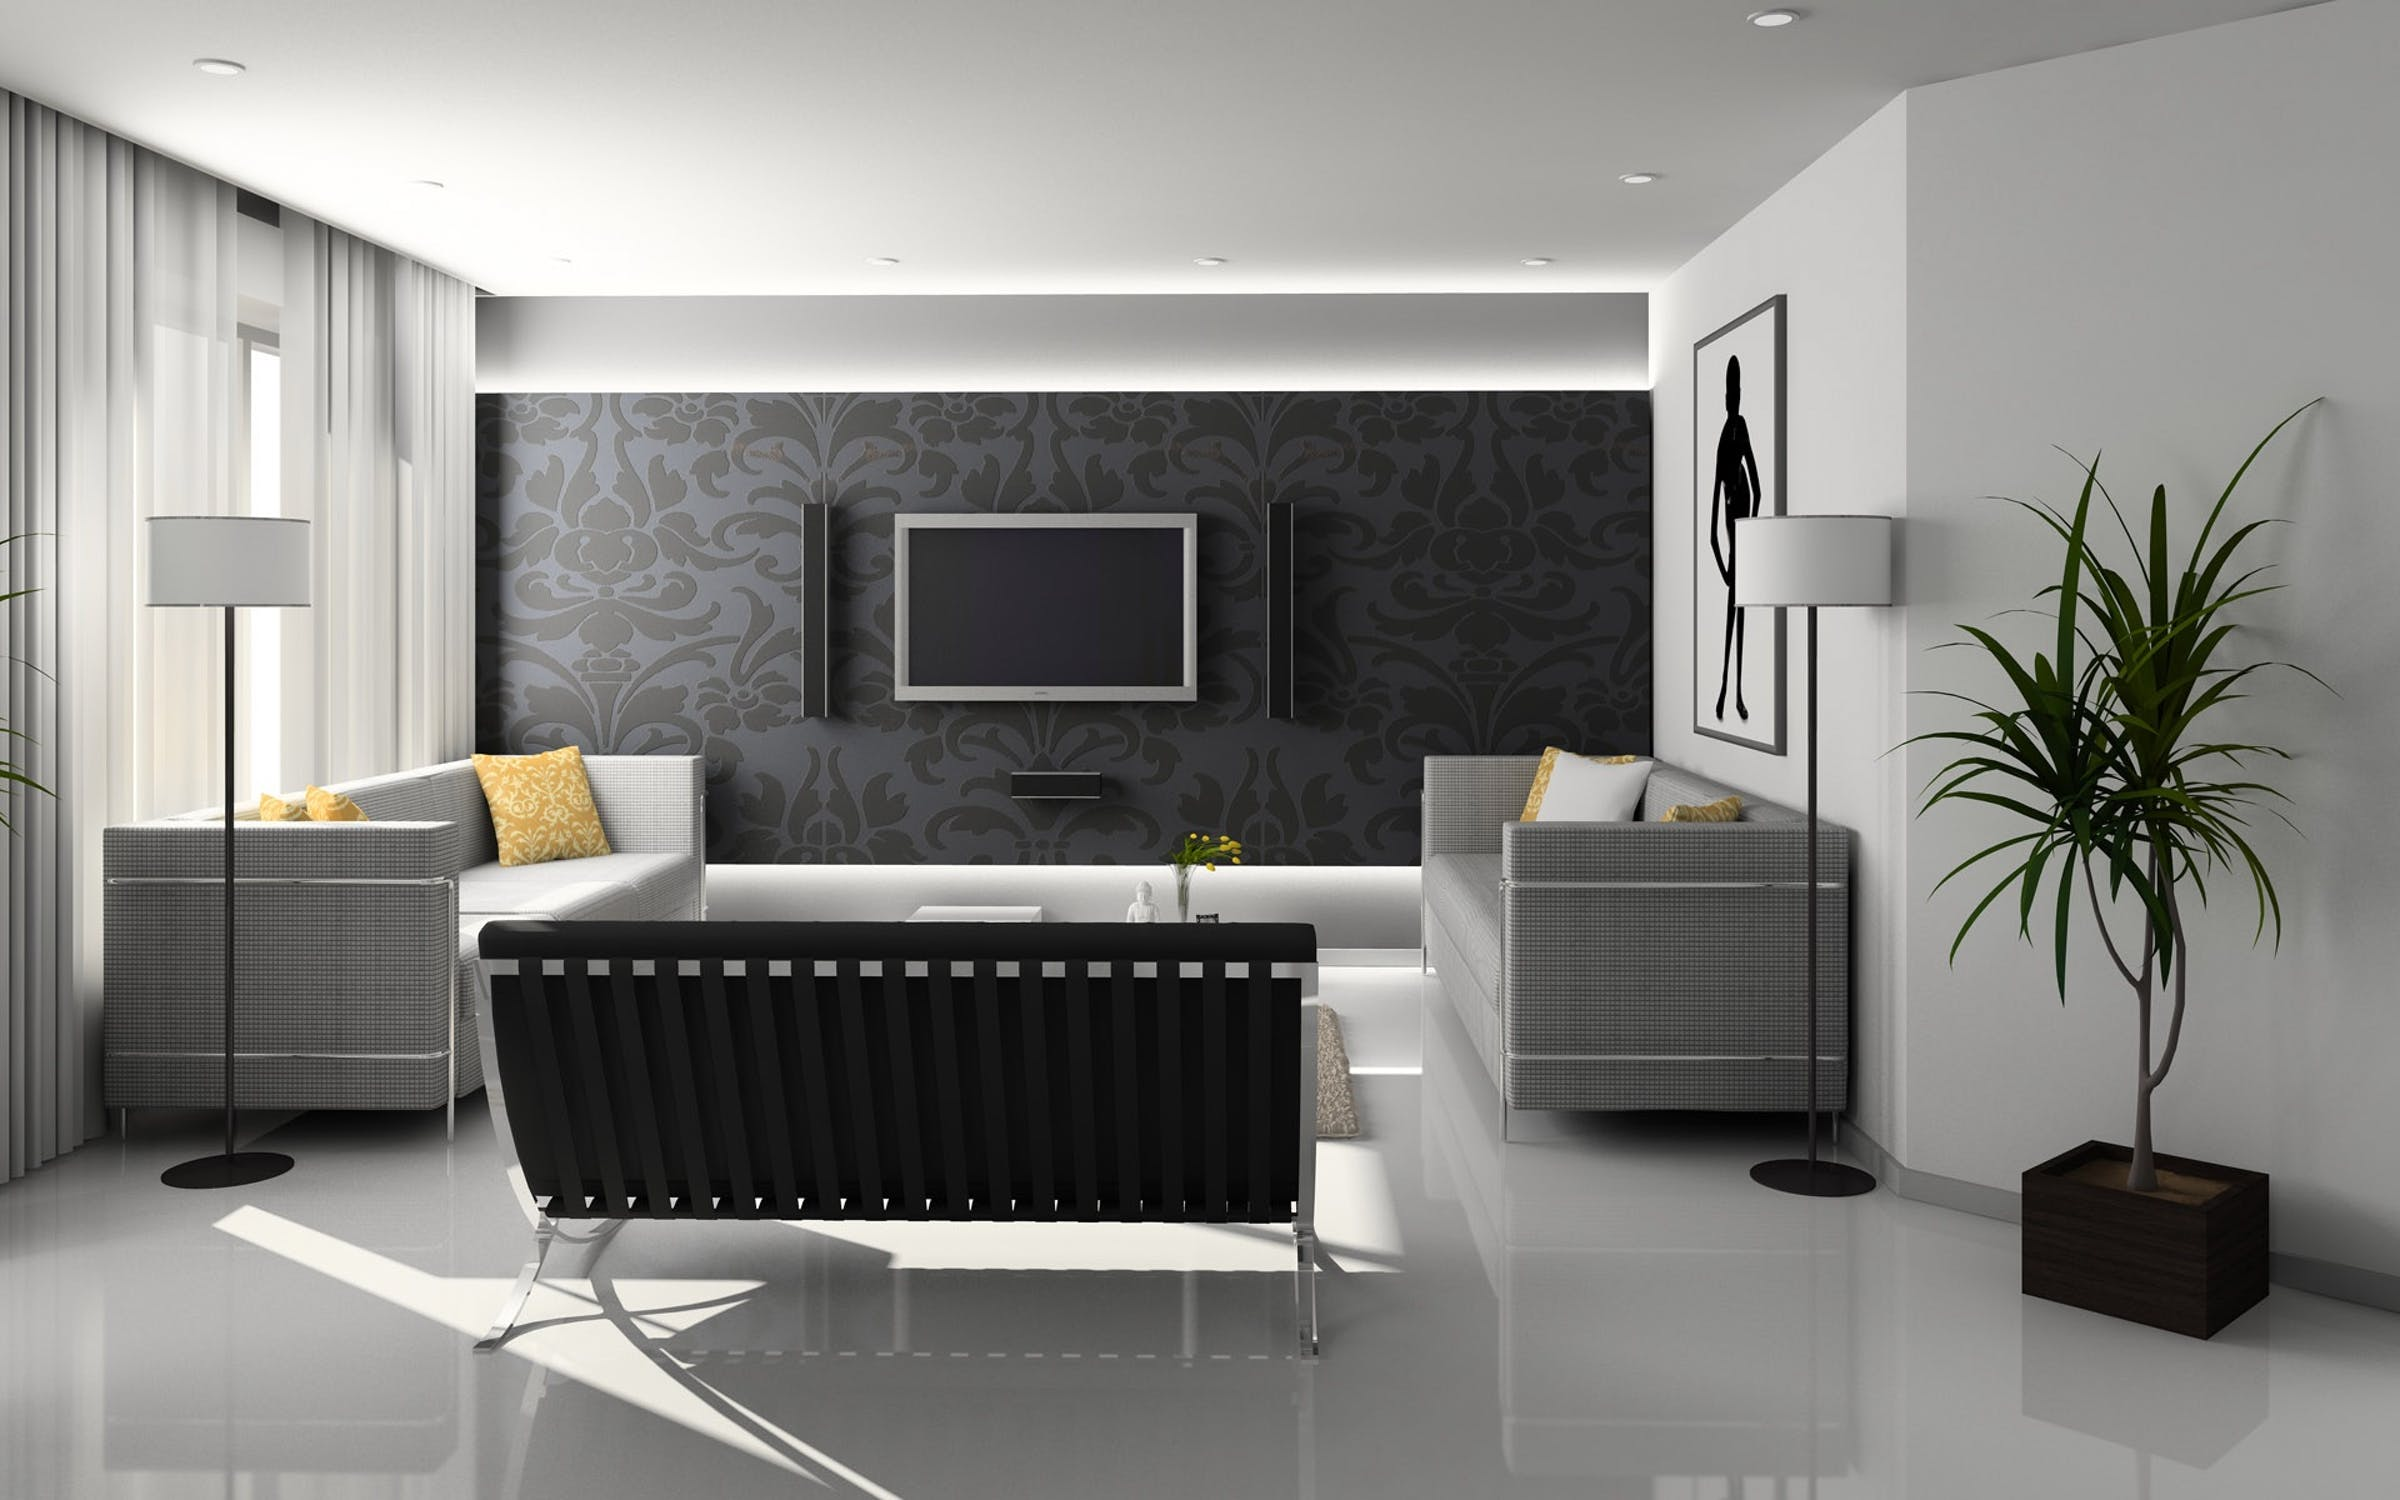 5 Tips to Decorate in a Minimalist Style